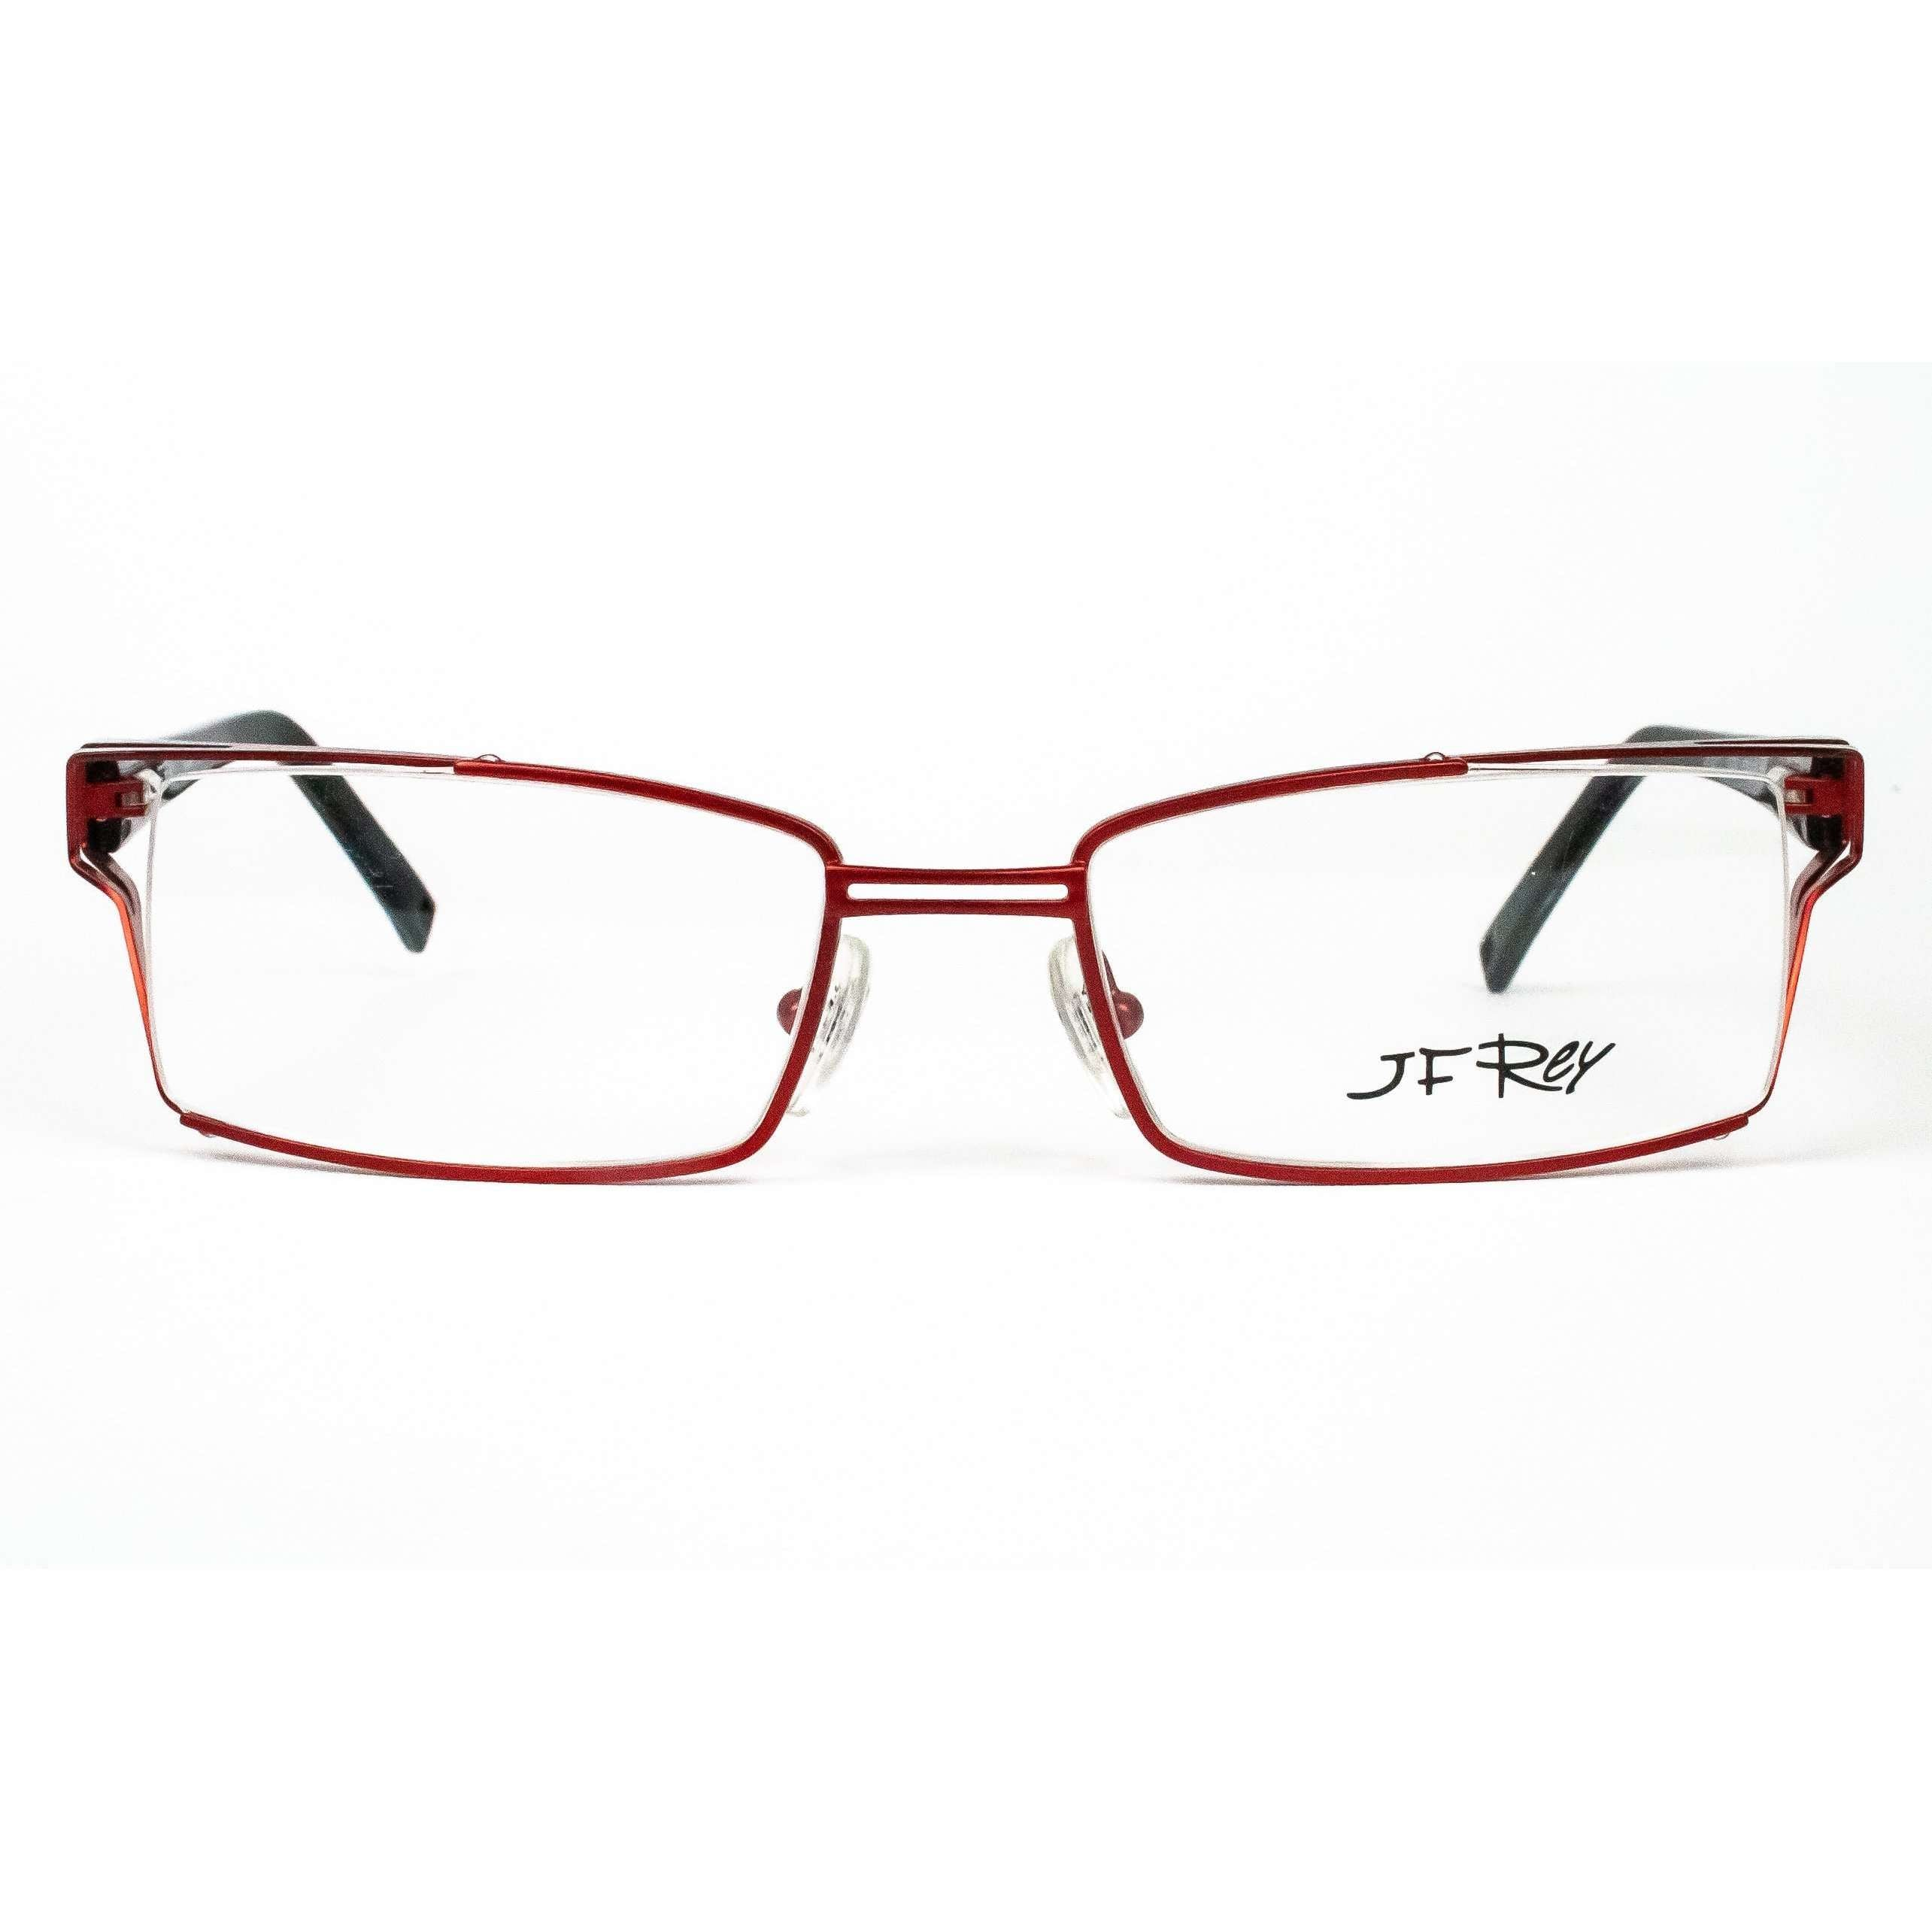 JF Rey Model 2211 Red Glasses